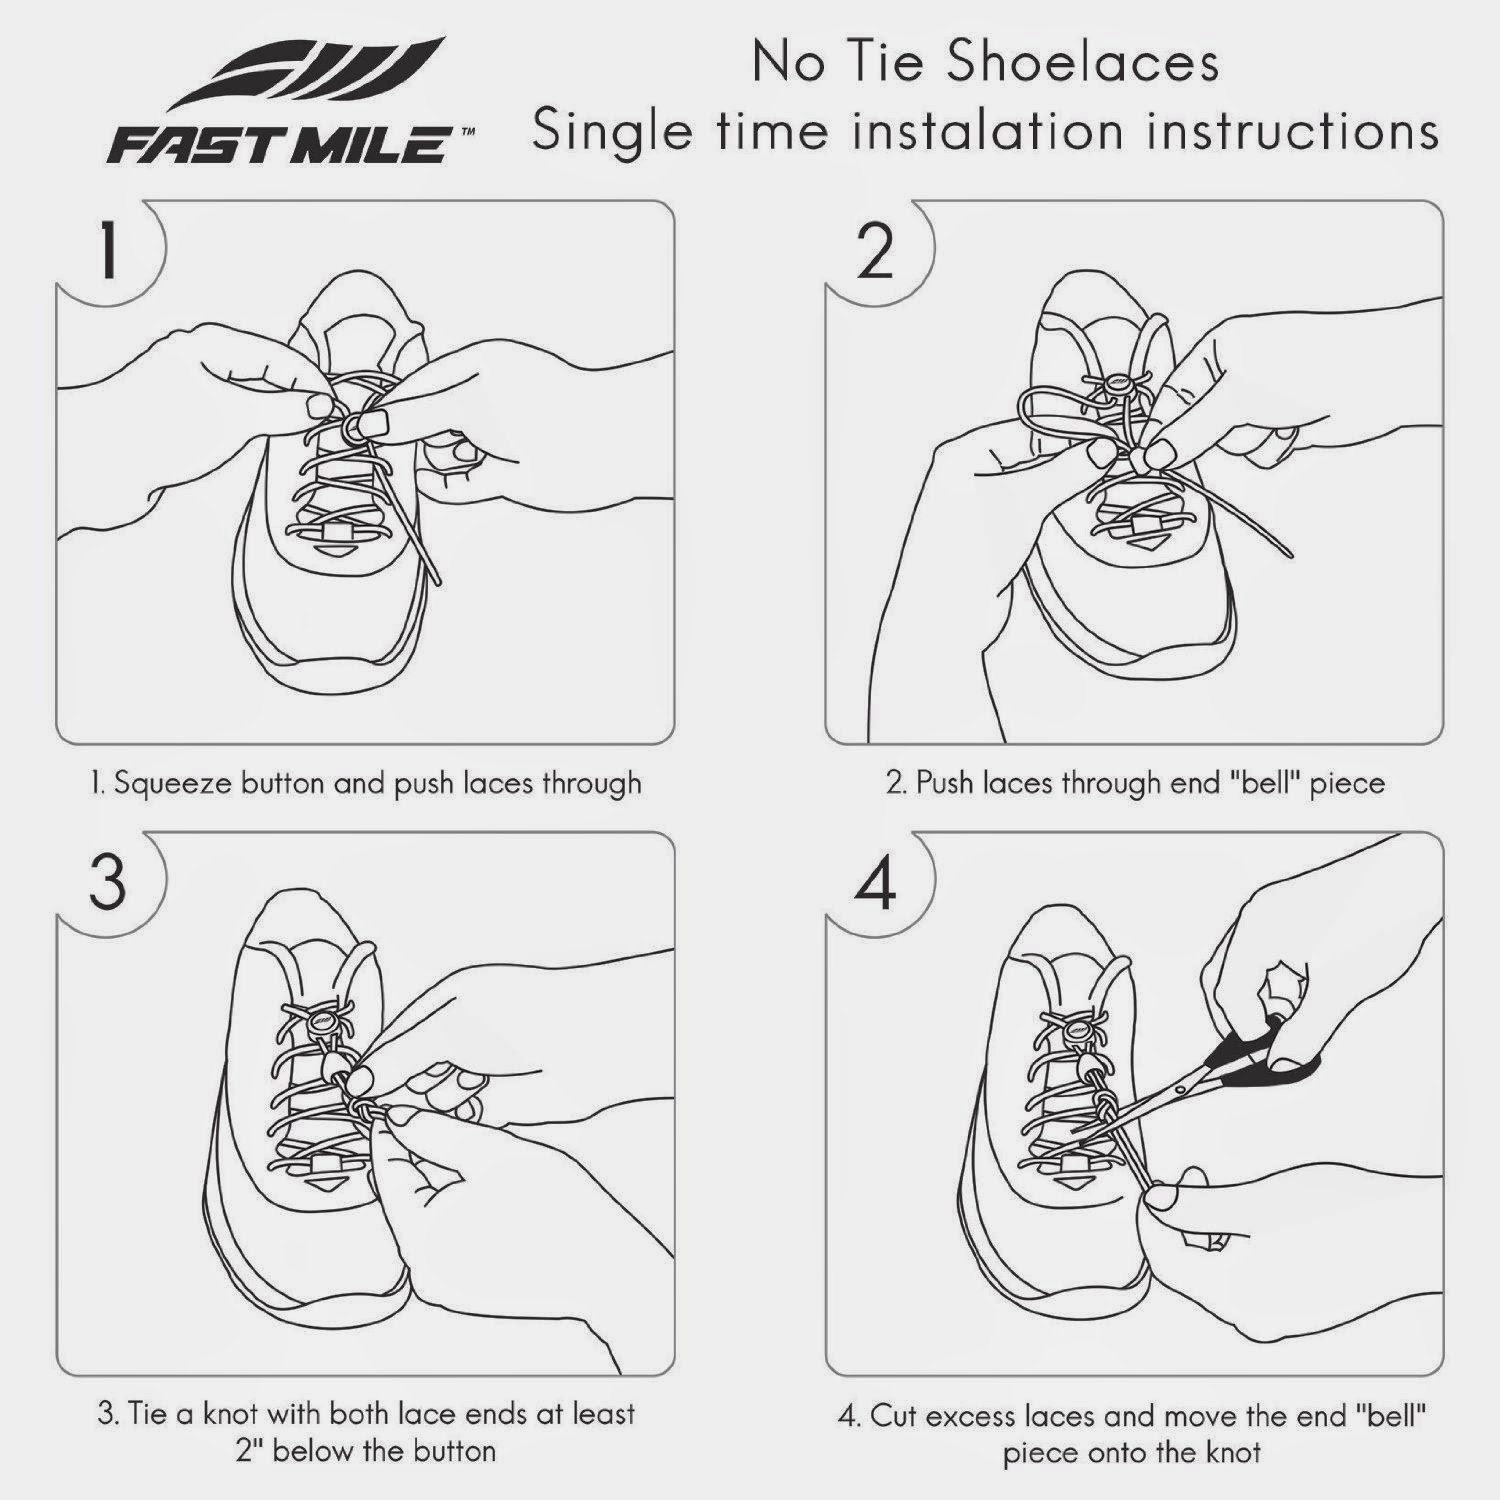 Popular product reviews by amy no tie shoelaces by fastmile i received this product in exchange for a review i was not compensated for my review and all my opinions are my own based on my personal experience with ccuart Gallery